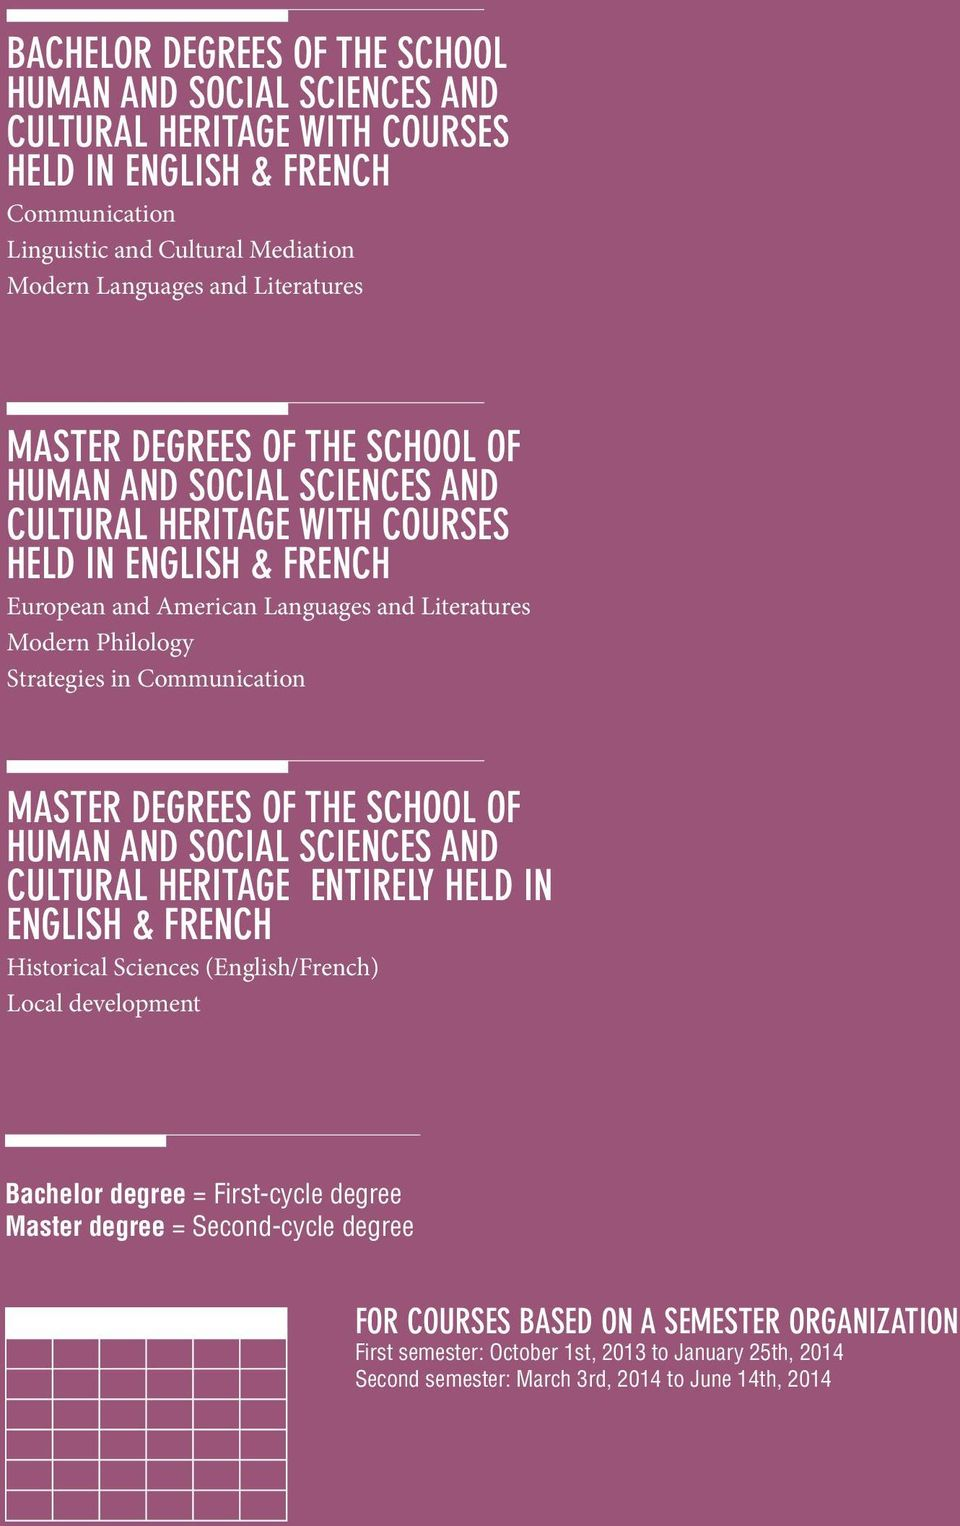 Communication MASTER DEGREES OF THE SCHOOL OF HUMAN AND SOCIAL SCIENCES AND CULTURAL HERITAGE ENTIRELY HELD IN ENGLISH & FRENCH Historical Sciences (English/French) Local development Bachelor degree